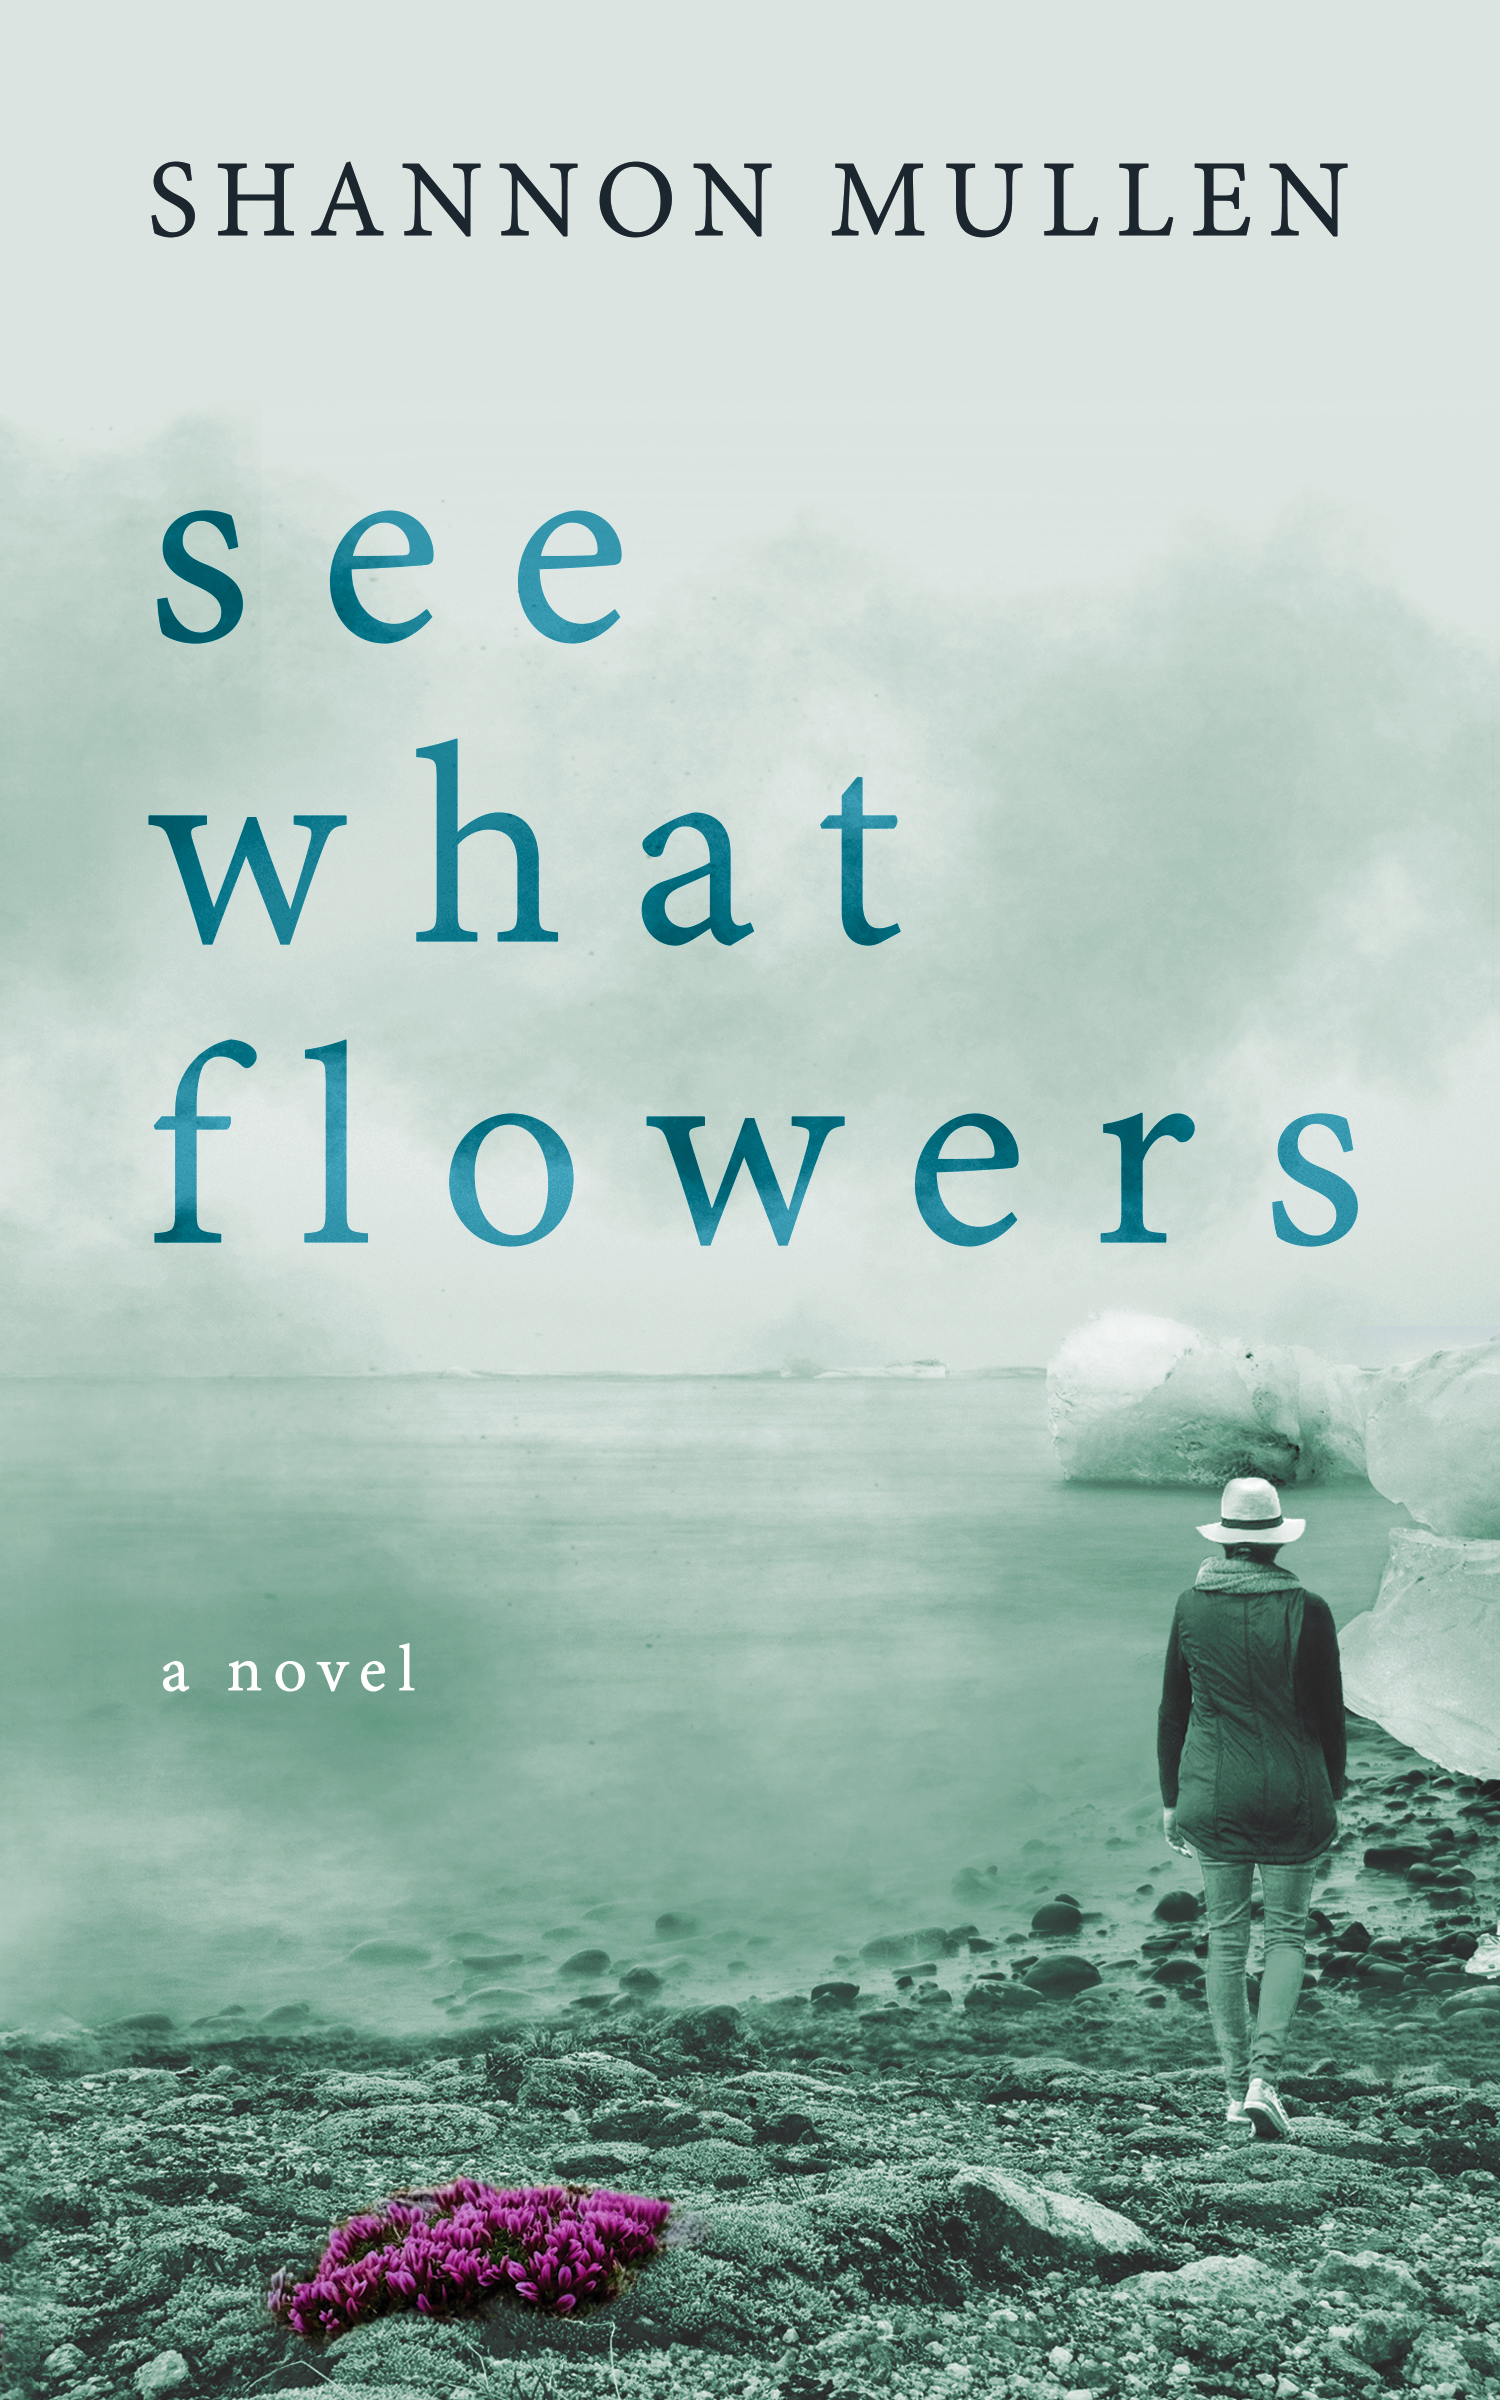 see what flowers - full page e-book cover